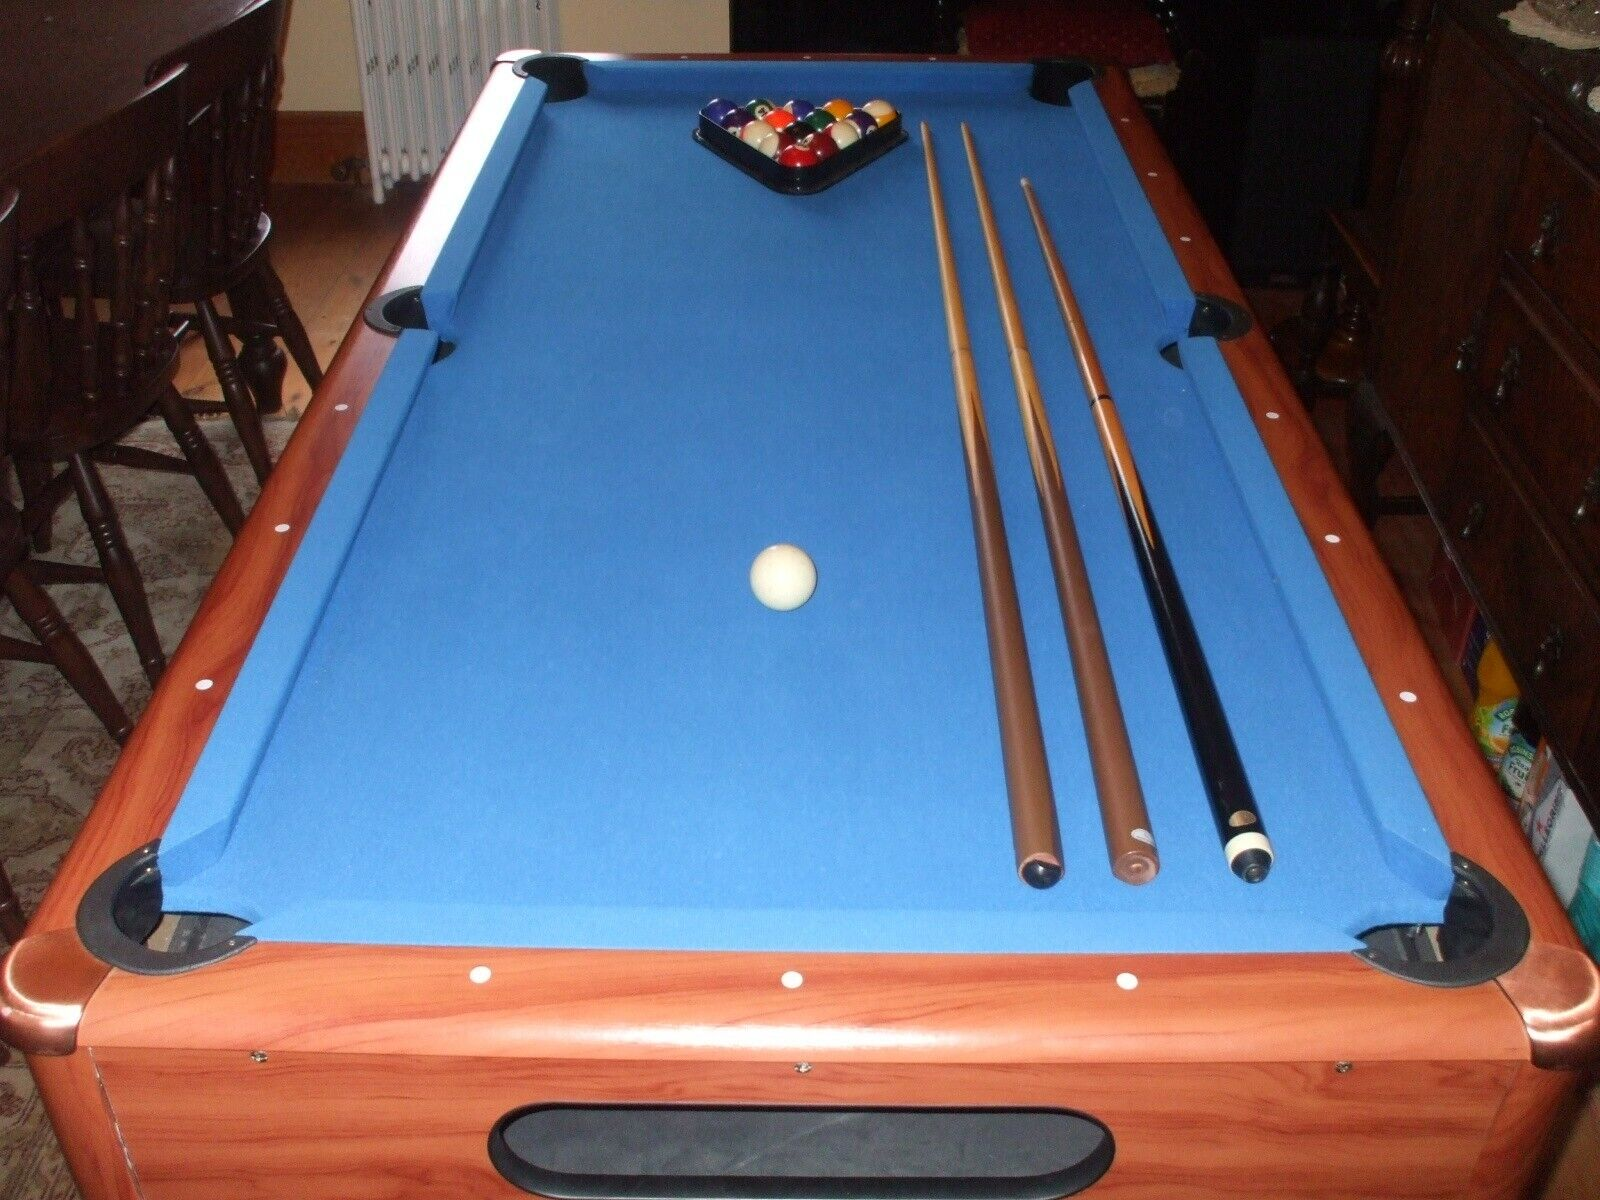 Pool table 6x3ft, free standing, including 3 cues, all balls, triangle, chalk.